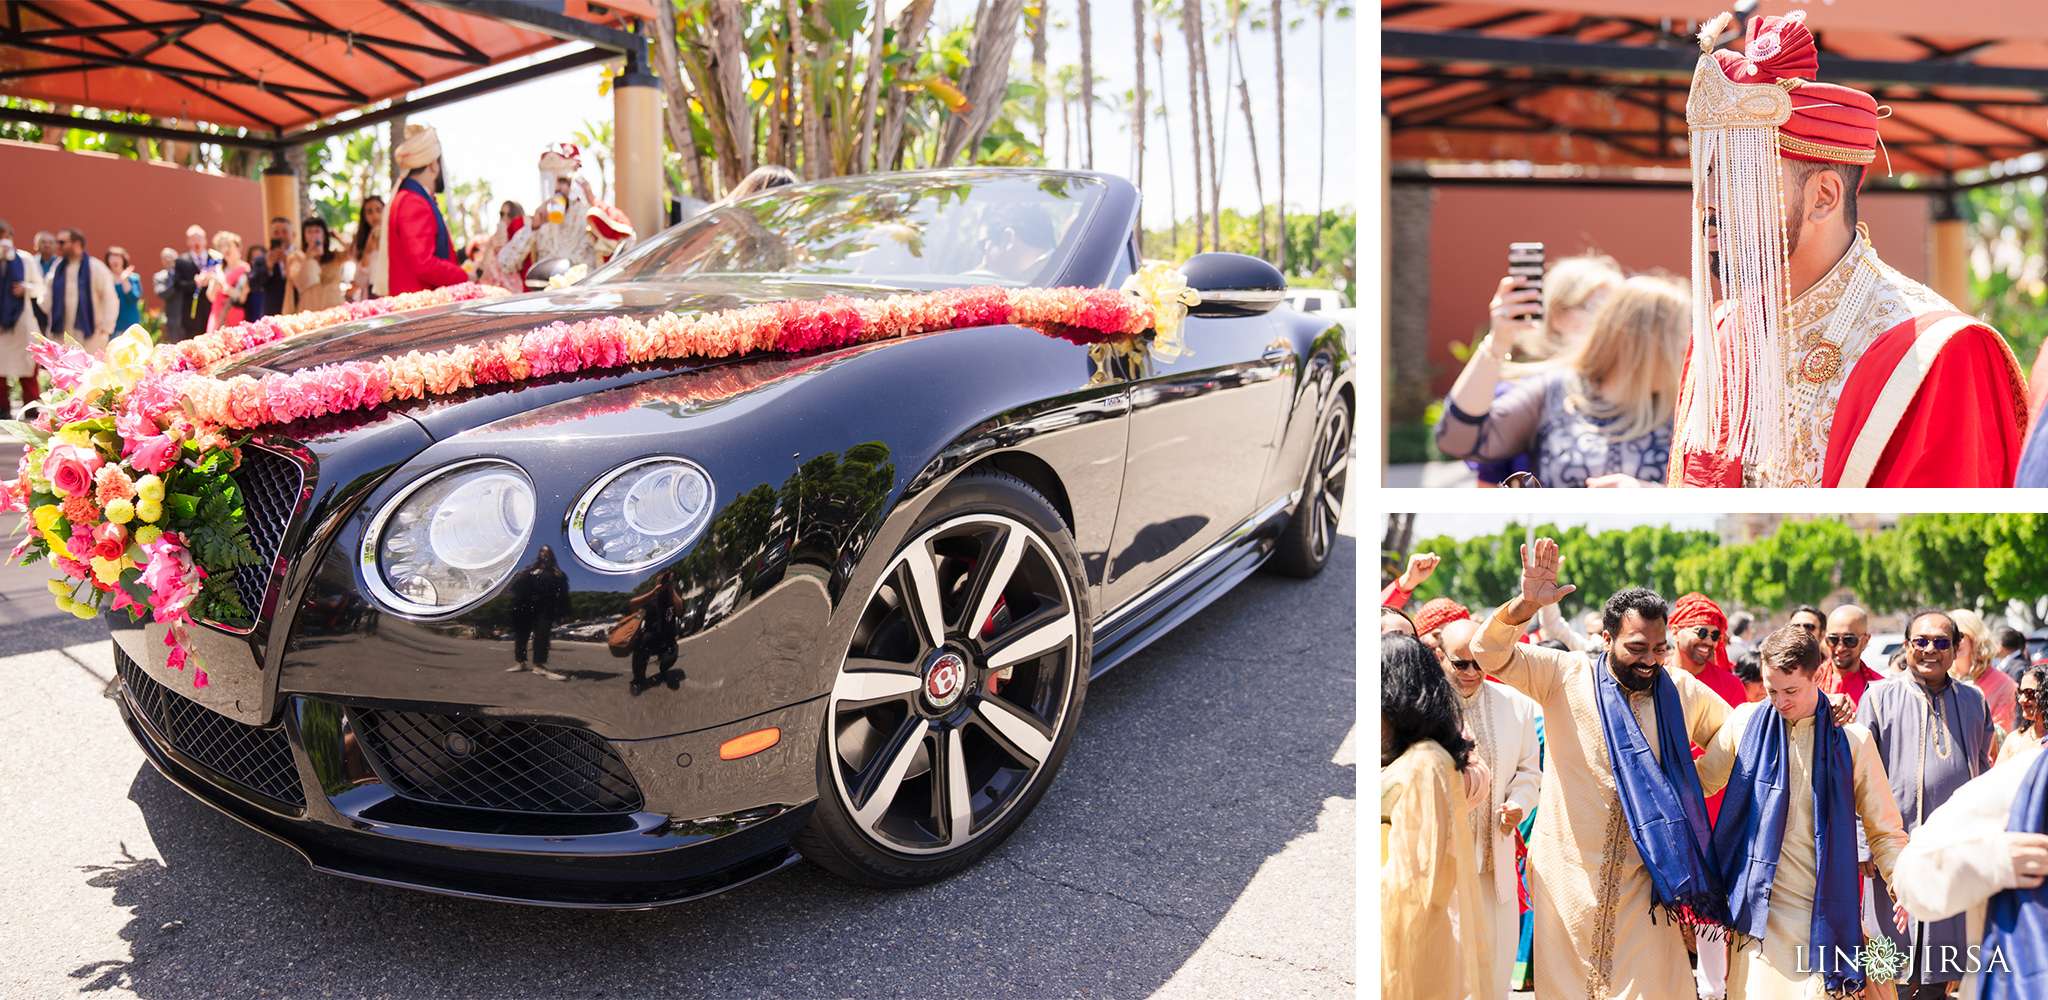 14 Hotel Irvine Multicultural Indian Baraat Wedding Photography